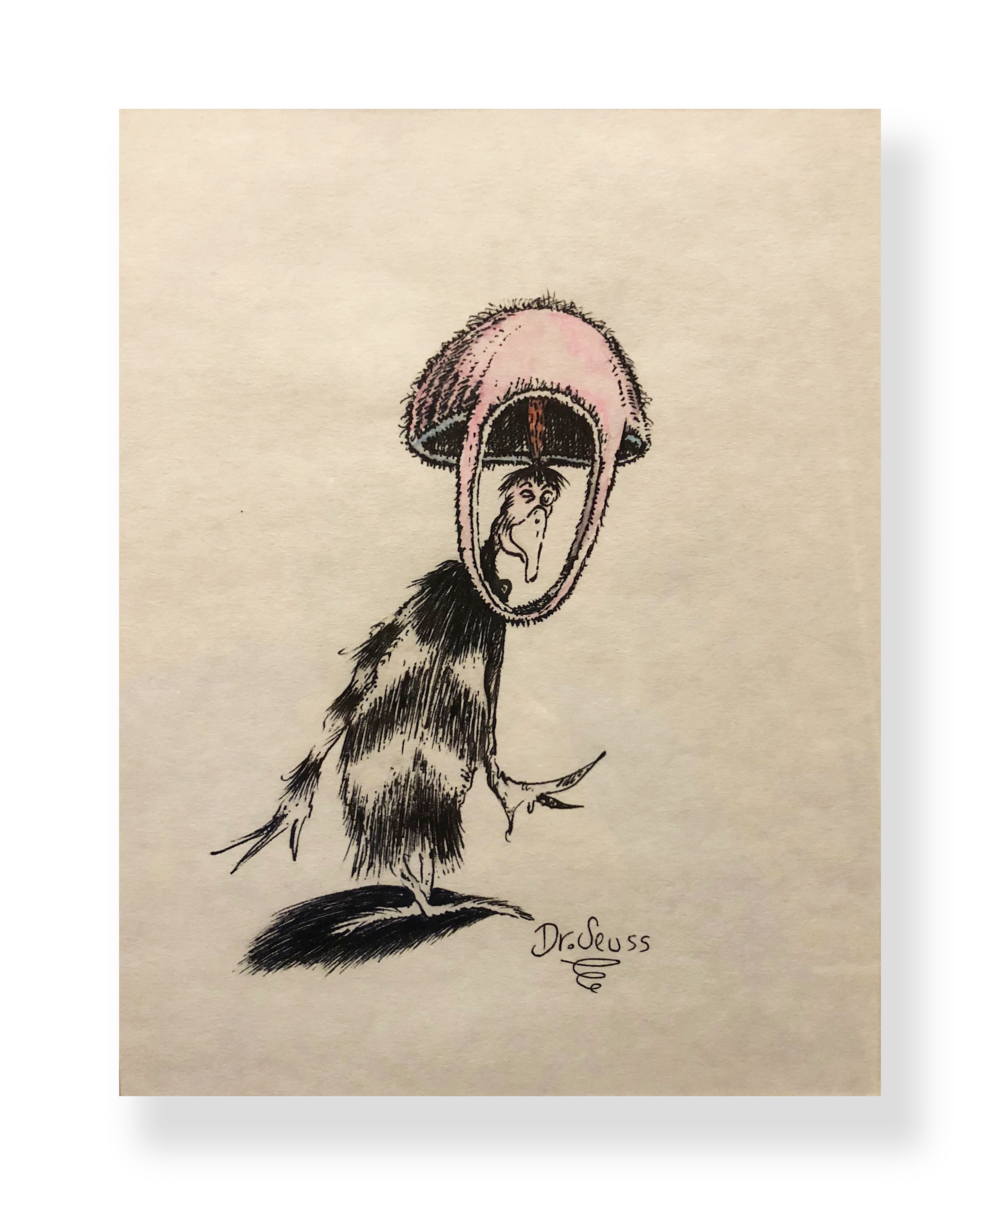 "Dr. Seuss  Seussian Bird  ""Wink, Wink""  Ink and watercolor on paper  7.5 x 9.25 inches  Circa 1950  Stu Reisbord collection"